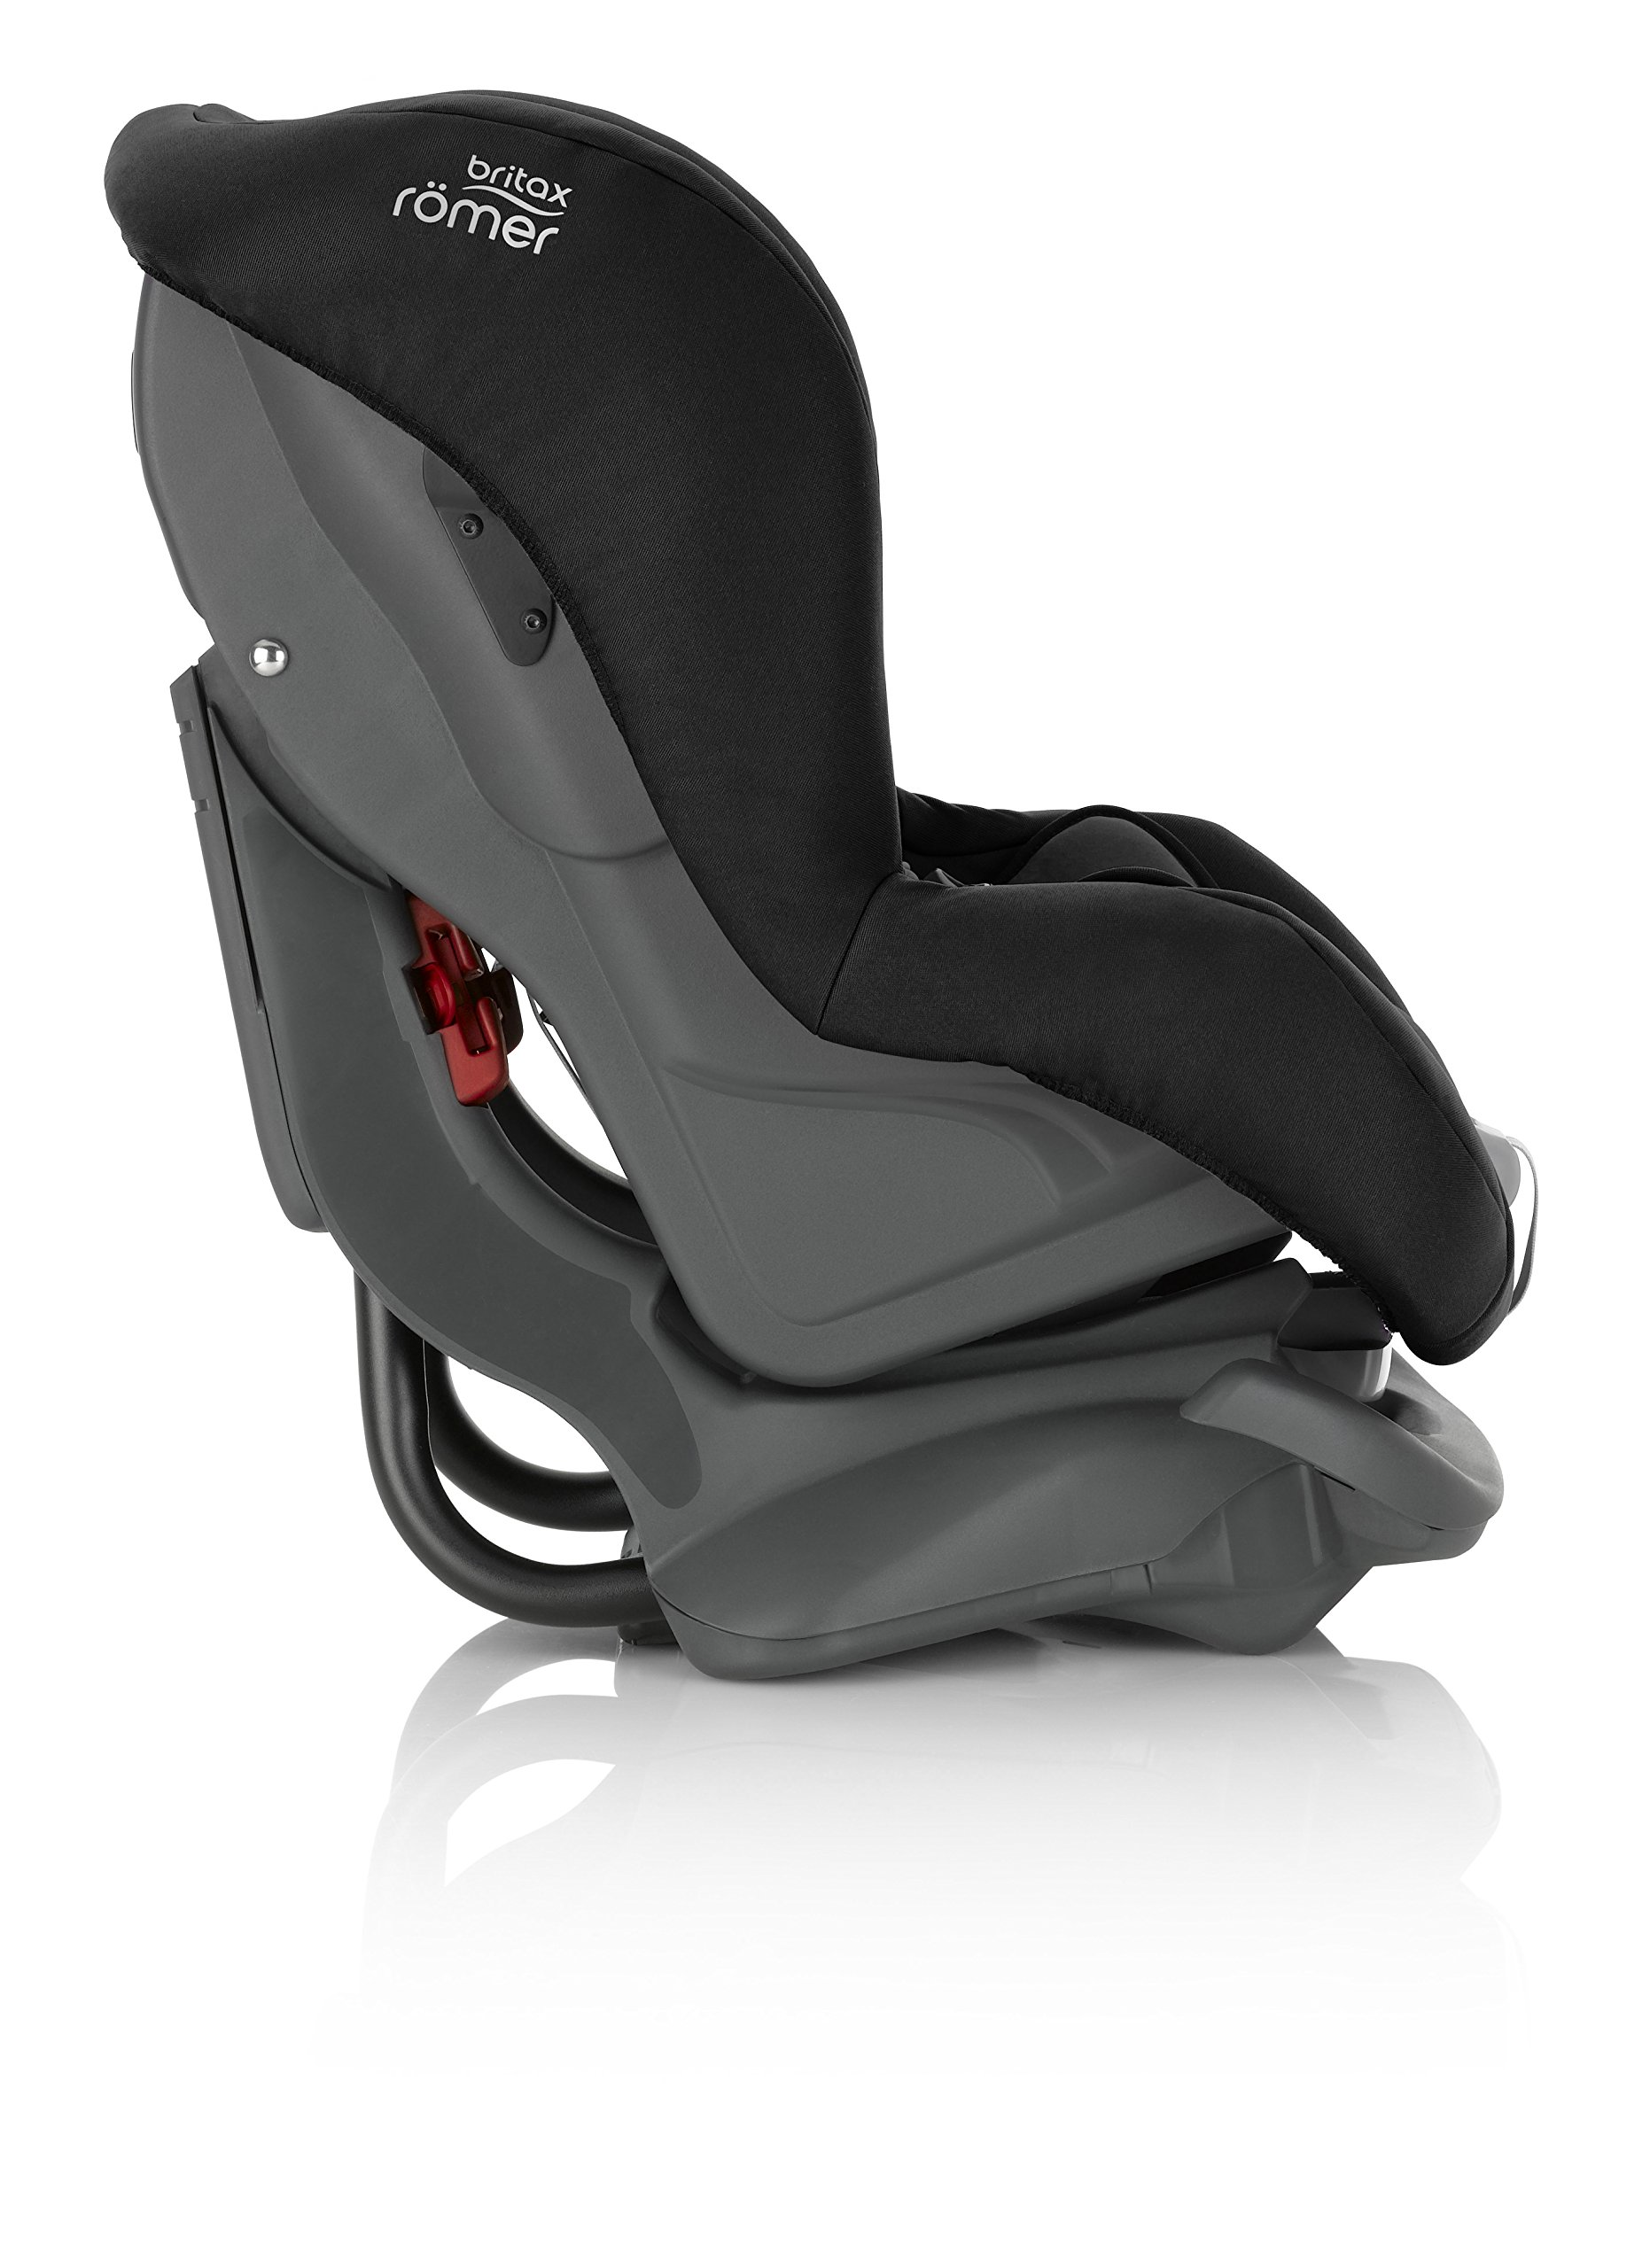 Britax Römer FIRST CLASS PLUS Group 0+/1 (Birth-18kg) Car Seat - Cosmos Black  Extended recline position when rearward facing - the safest way to travel Reassurance built-in - CLICK & SAFE harness tensioning confirmation Superior protection - side impact protection Plus performance chest pads and pitch control system 6